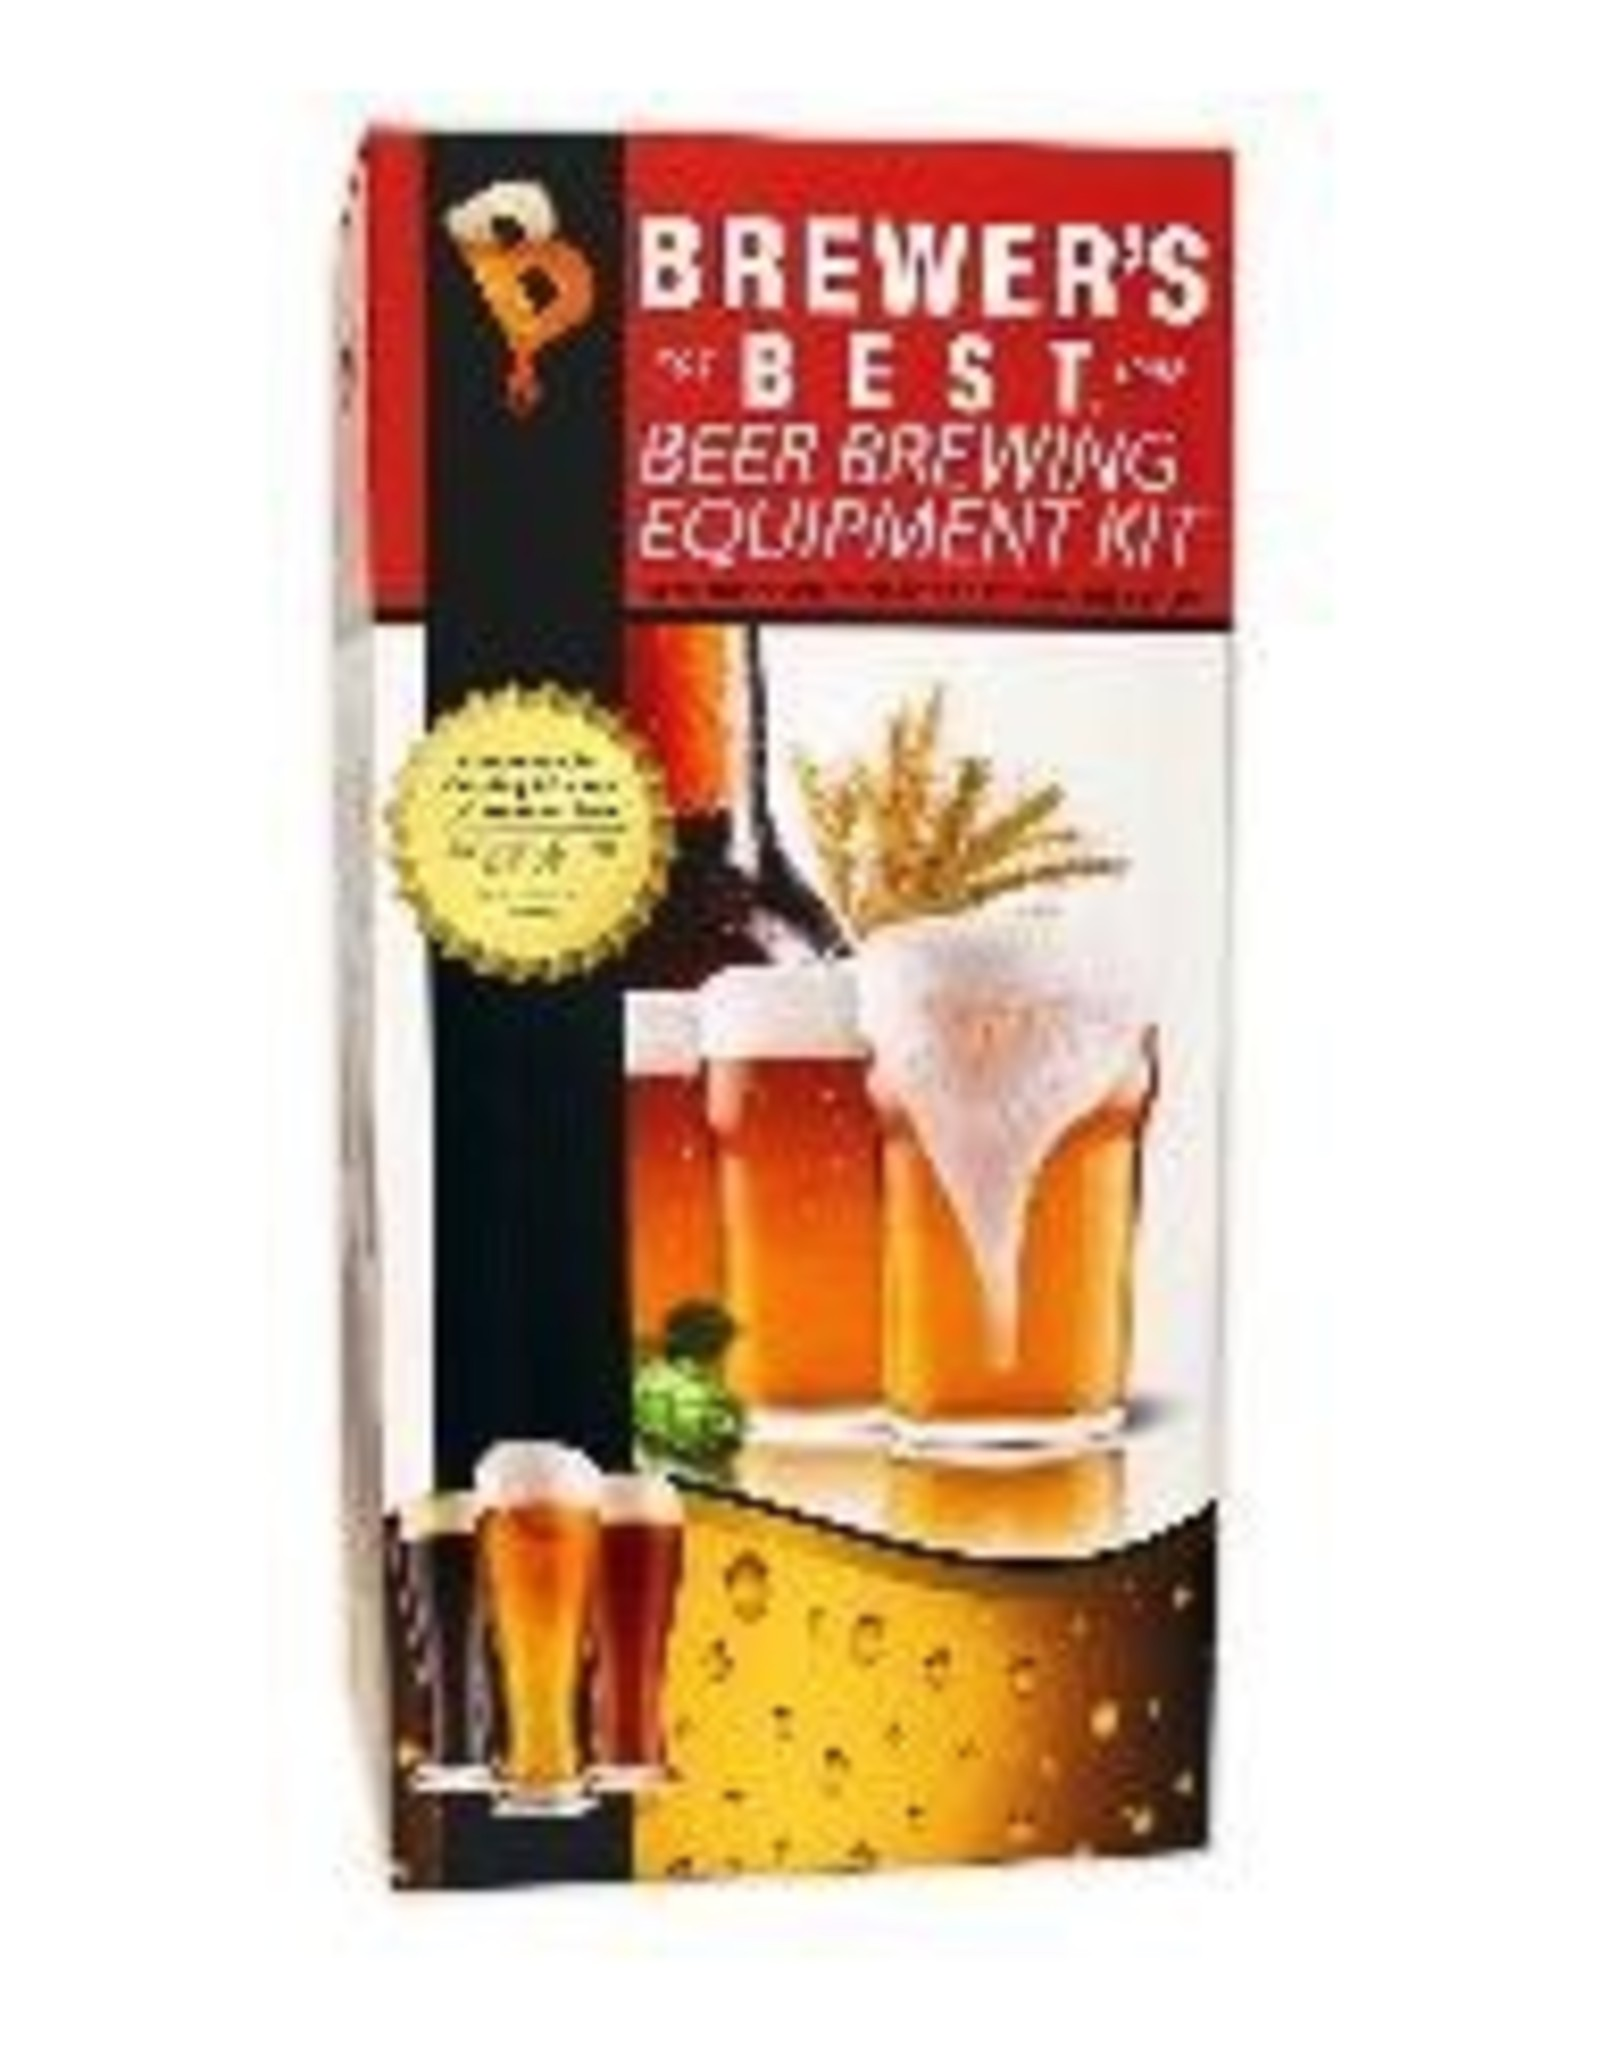 BREWERS BEST The most complete equipment kit in the homebrew industry is now available from Brewer's Best. The Brewer's BeAst includes everything your customers need to make the finest batch of beer (by using a Brewer's Best ingredient kit, of course) in one box. Equi